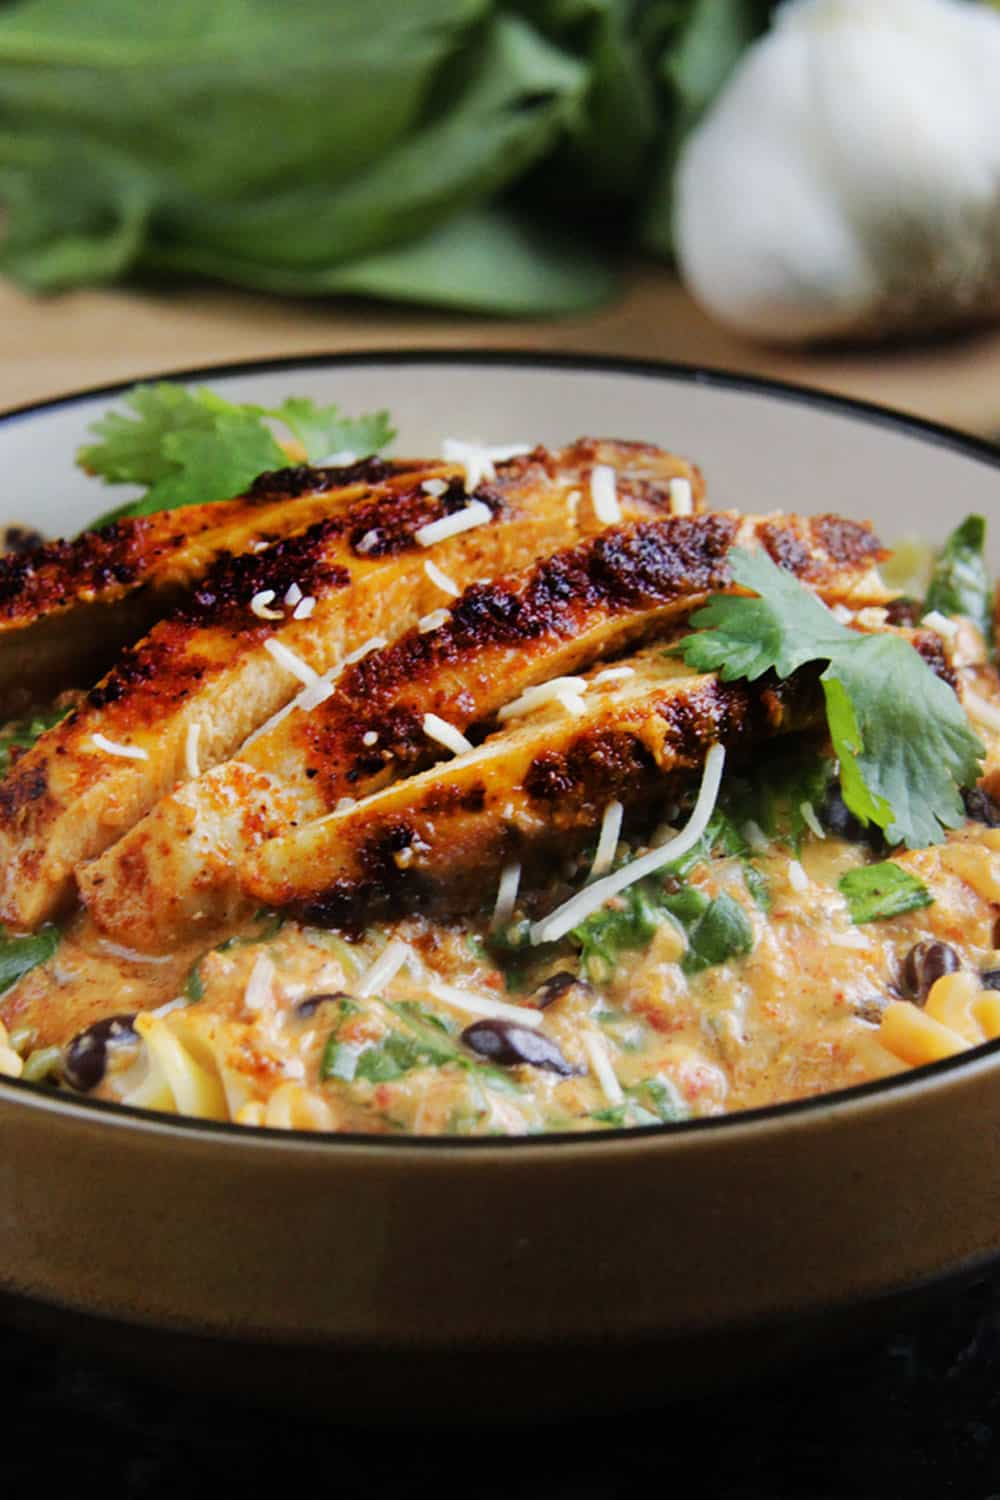 TexMex-Creamy-Roasted-Red-Pepper-Pasta-with-Blackened-Chipotle-Chicken-004